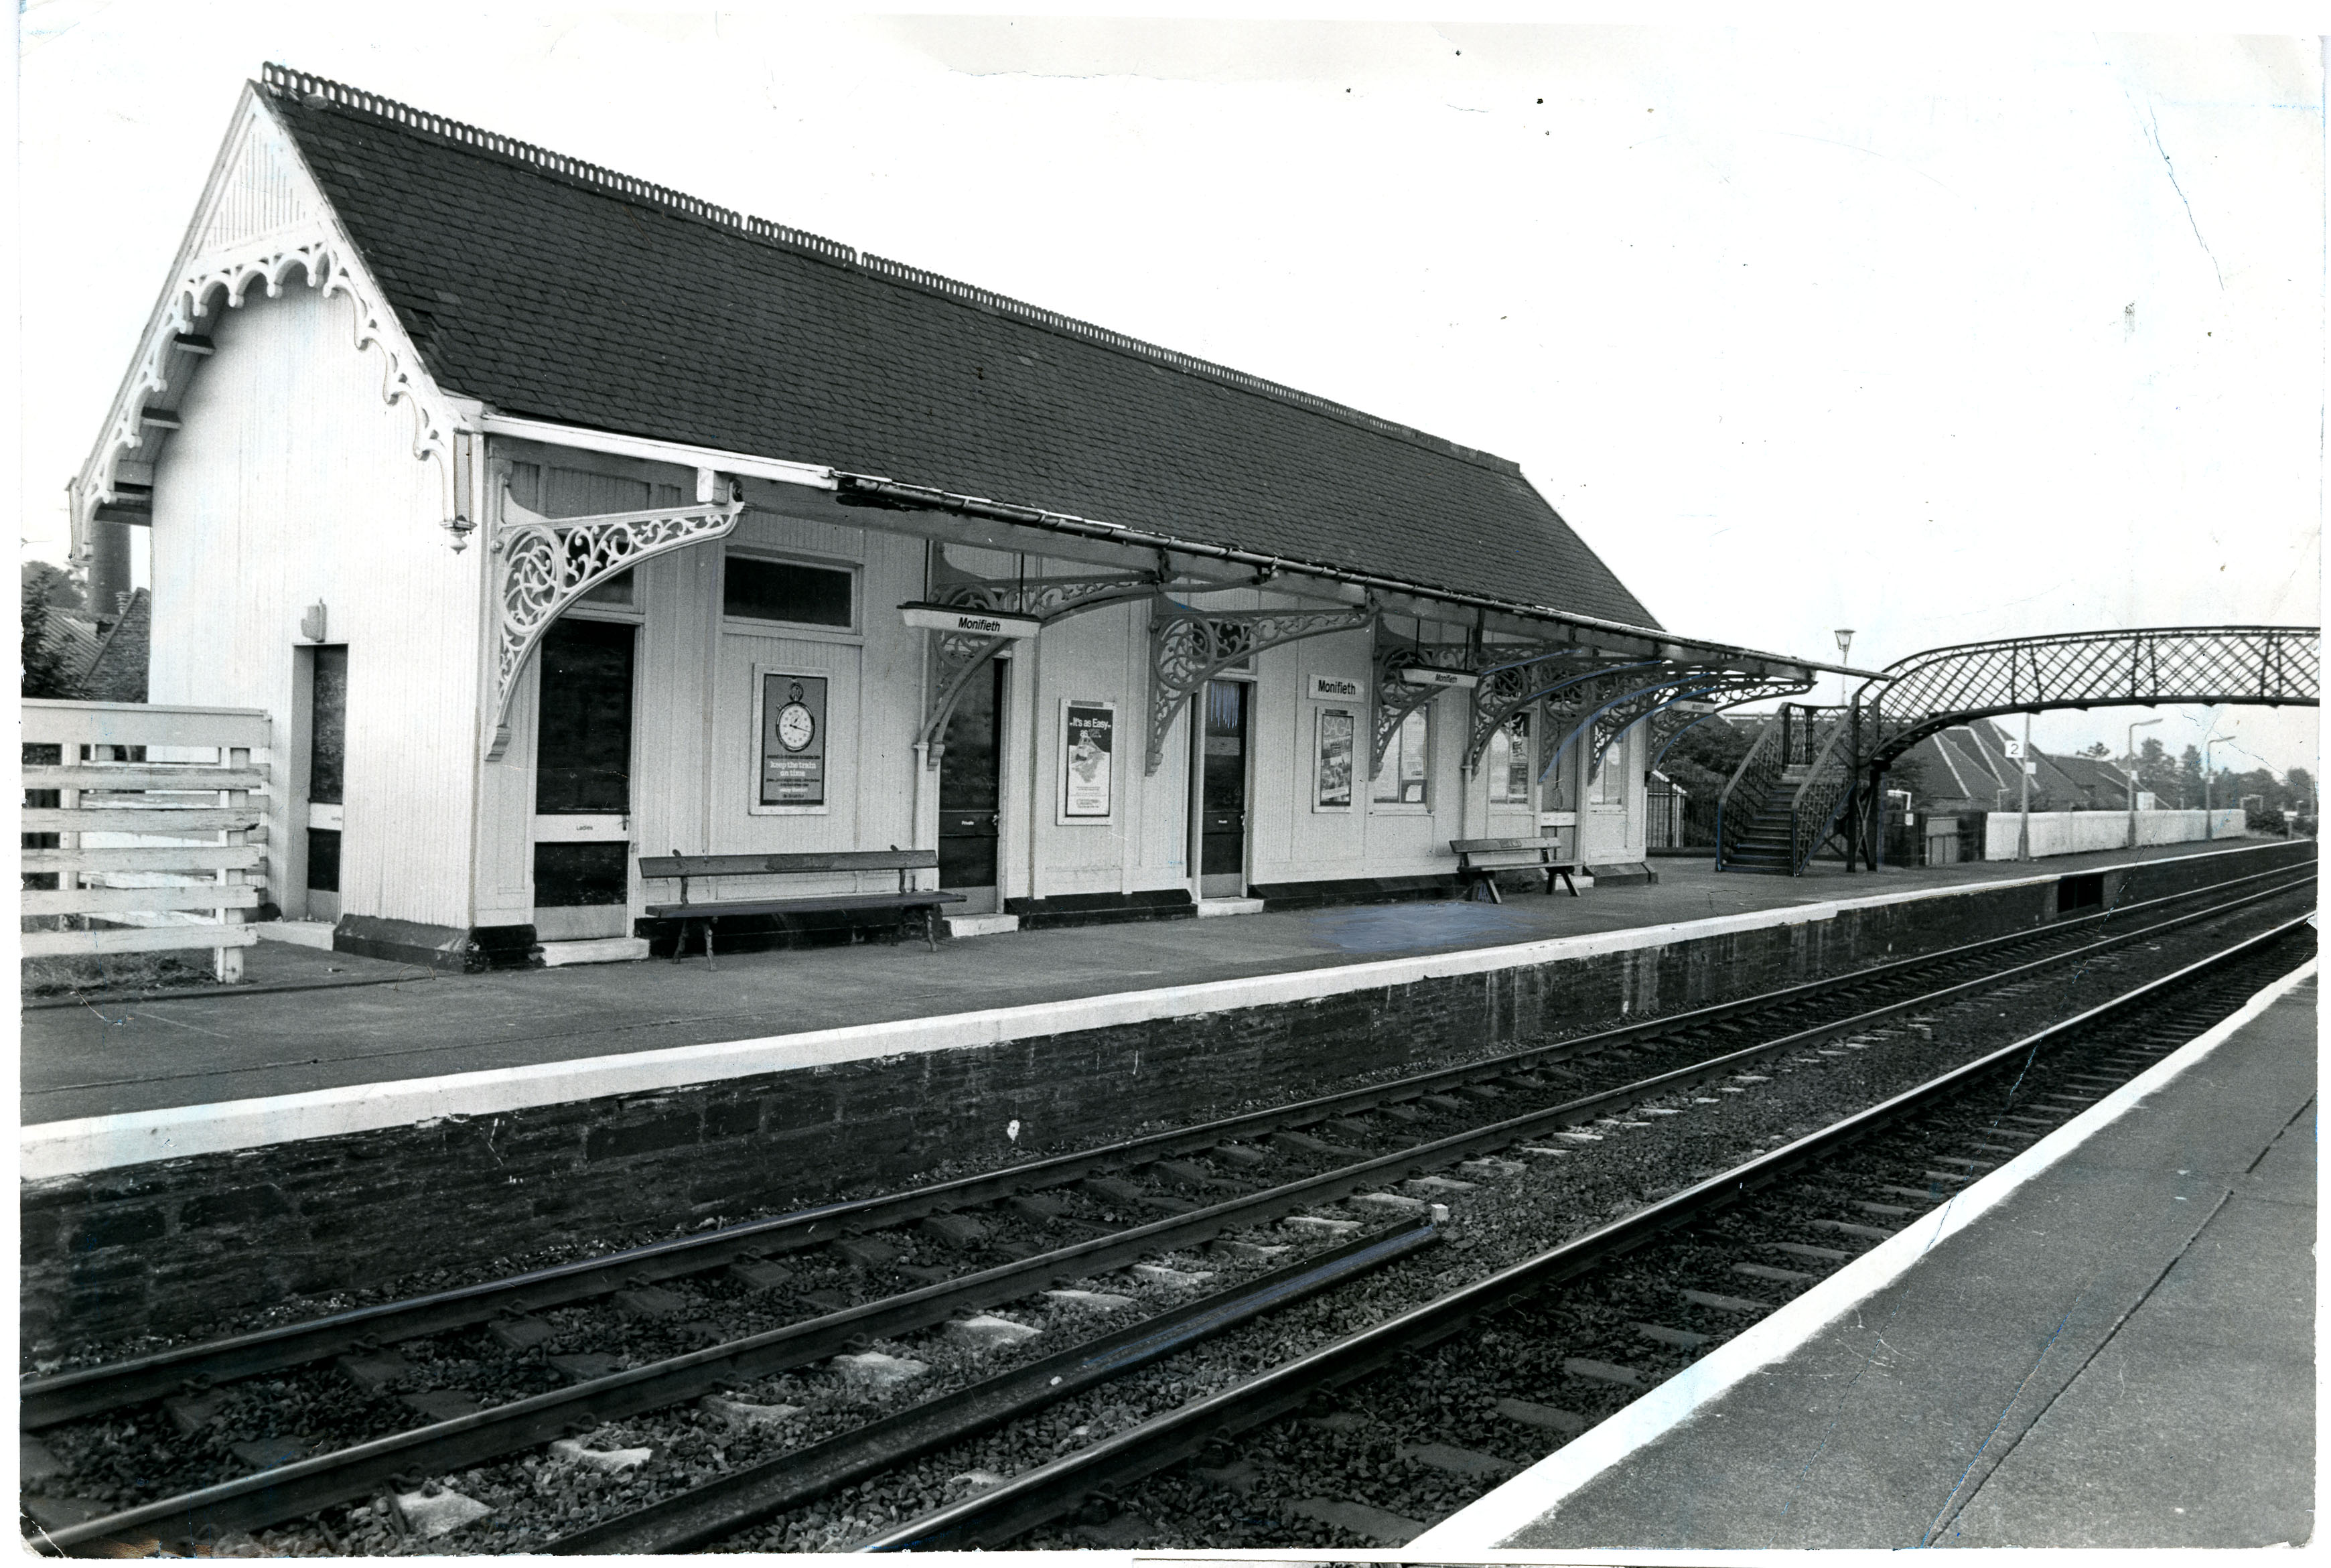 The station at Monifieth pictured in 1984